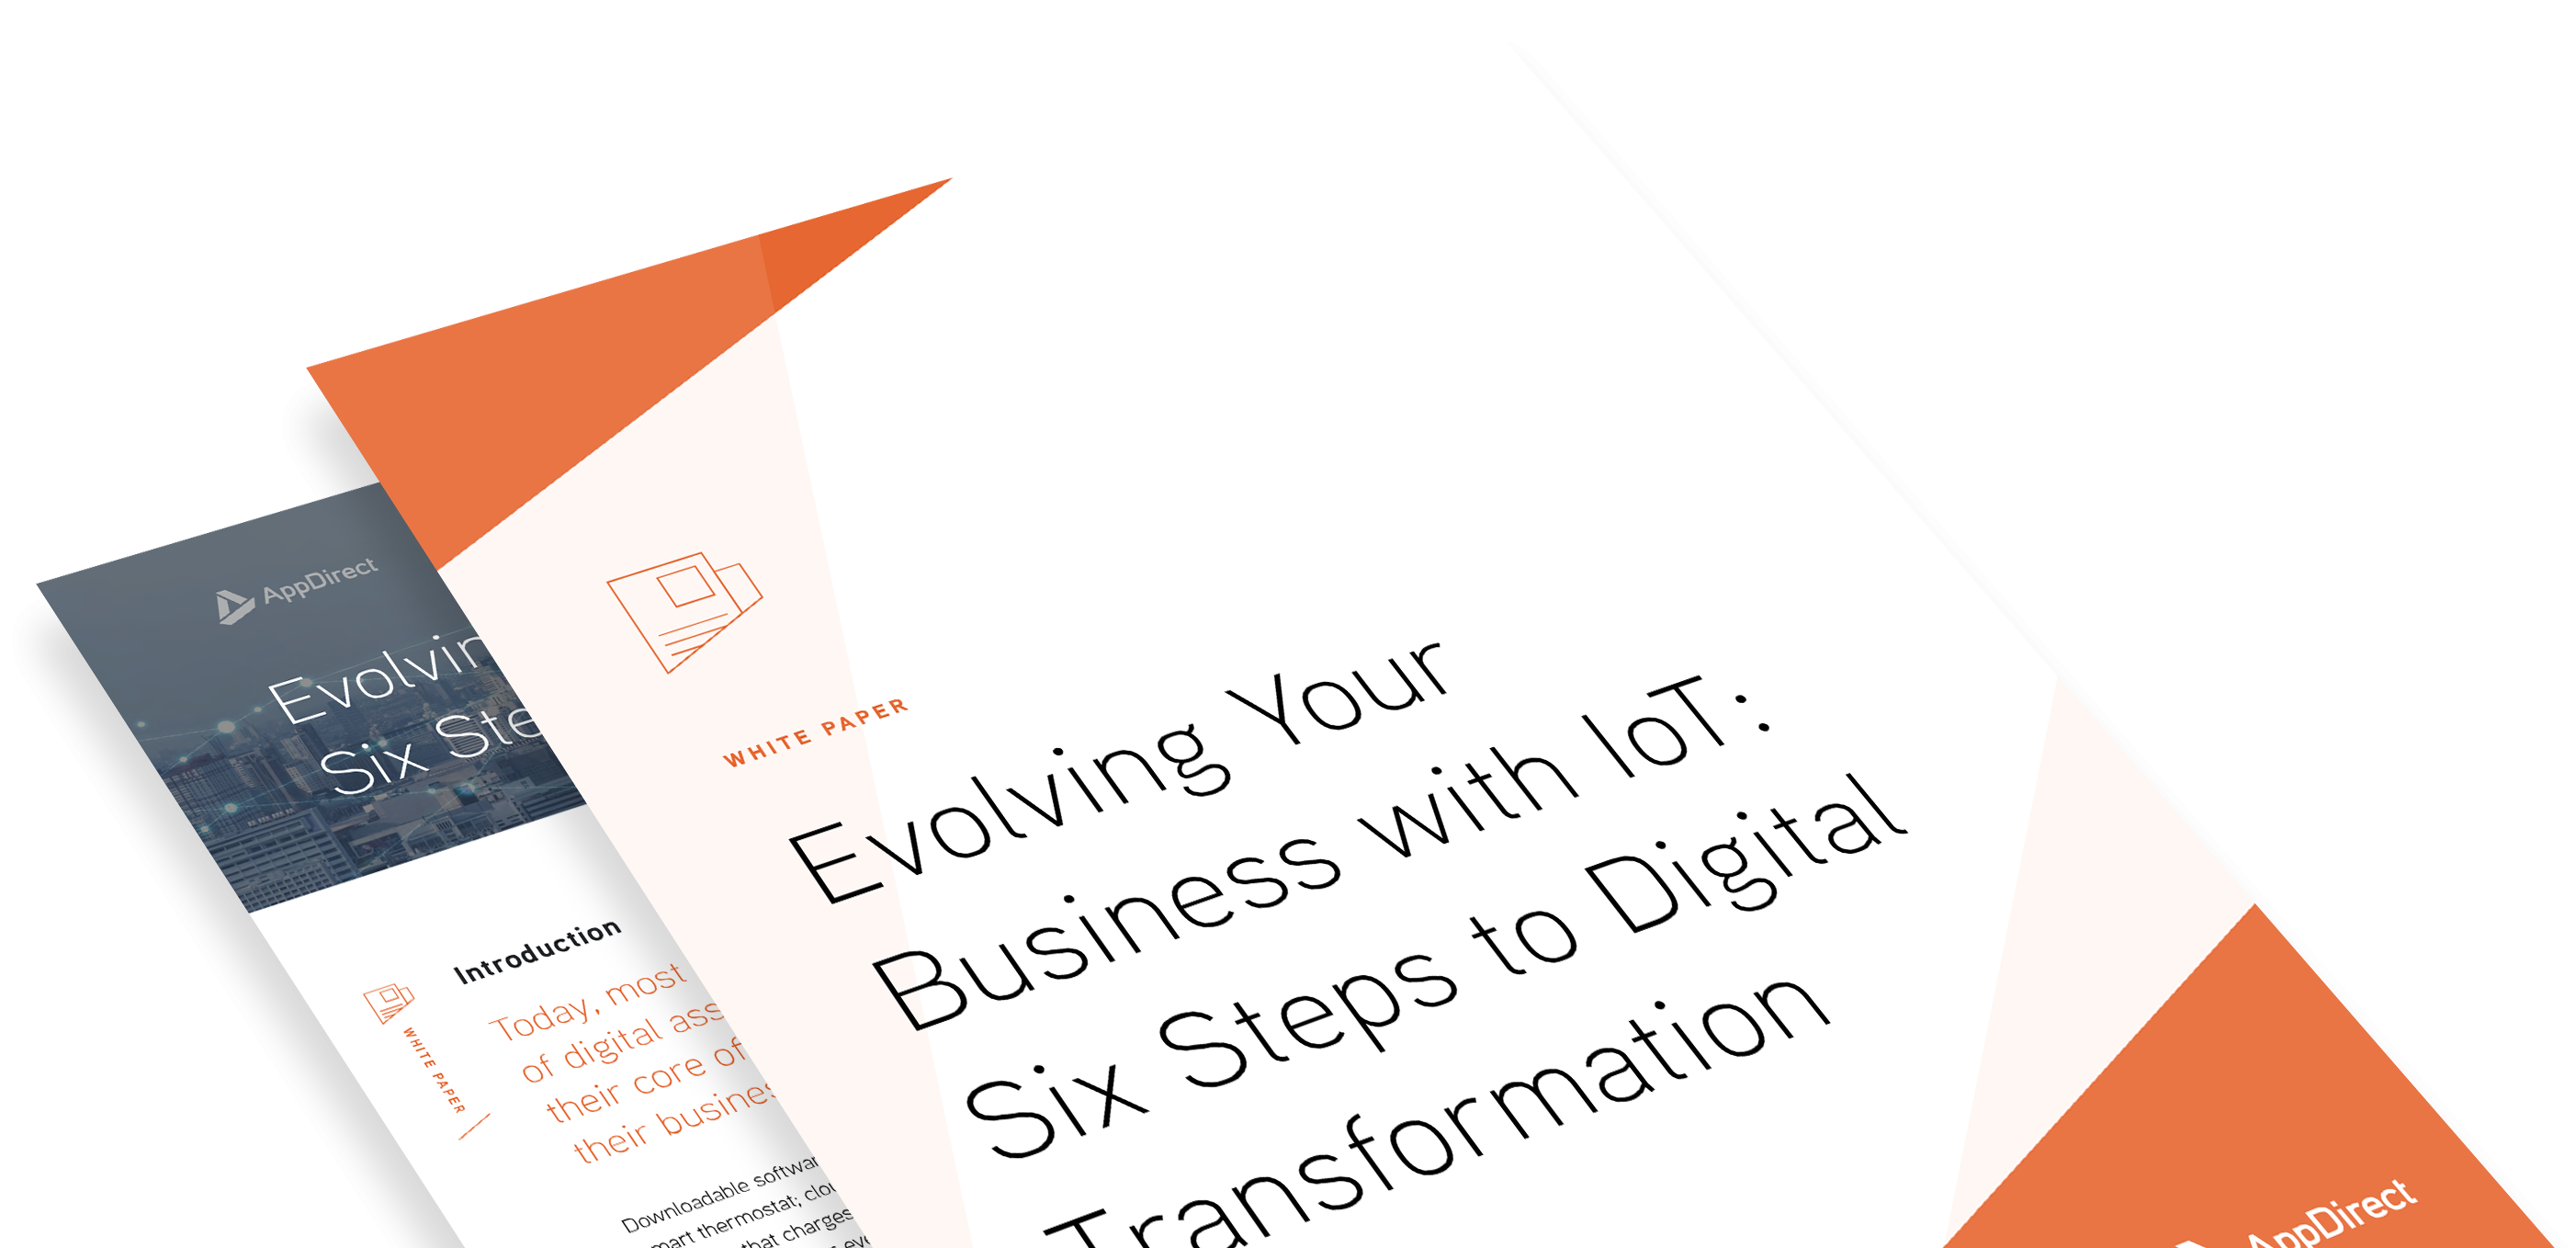 Evolving your Business with IoT: Six Steps to Digital Transformation